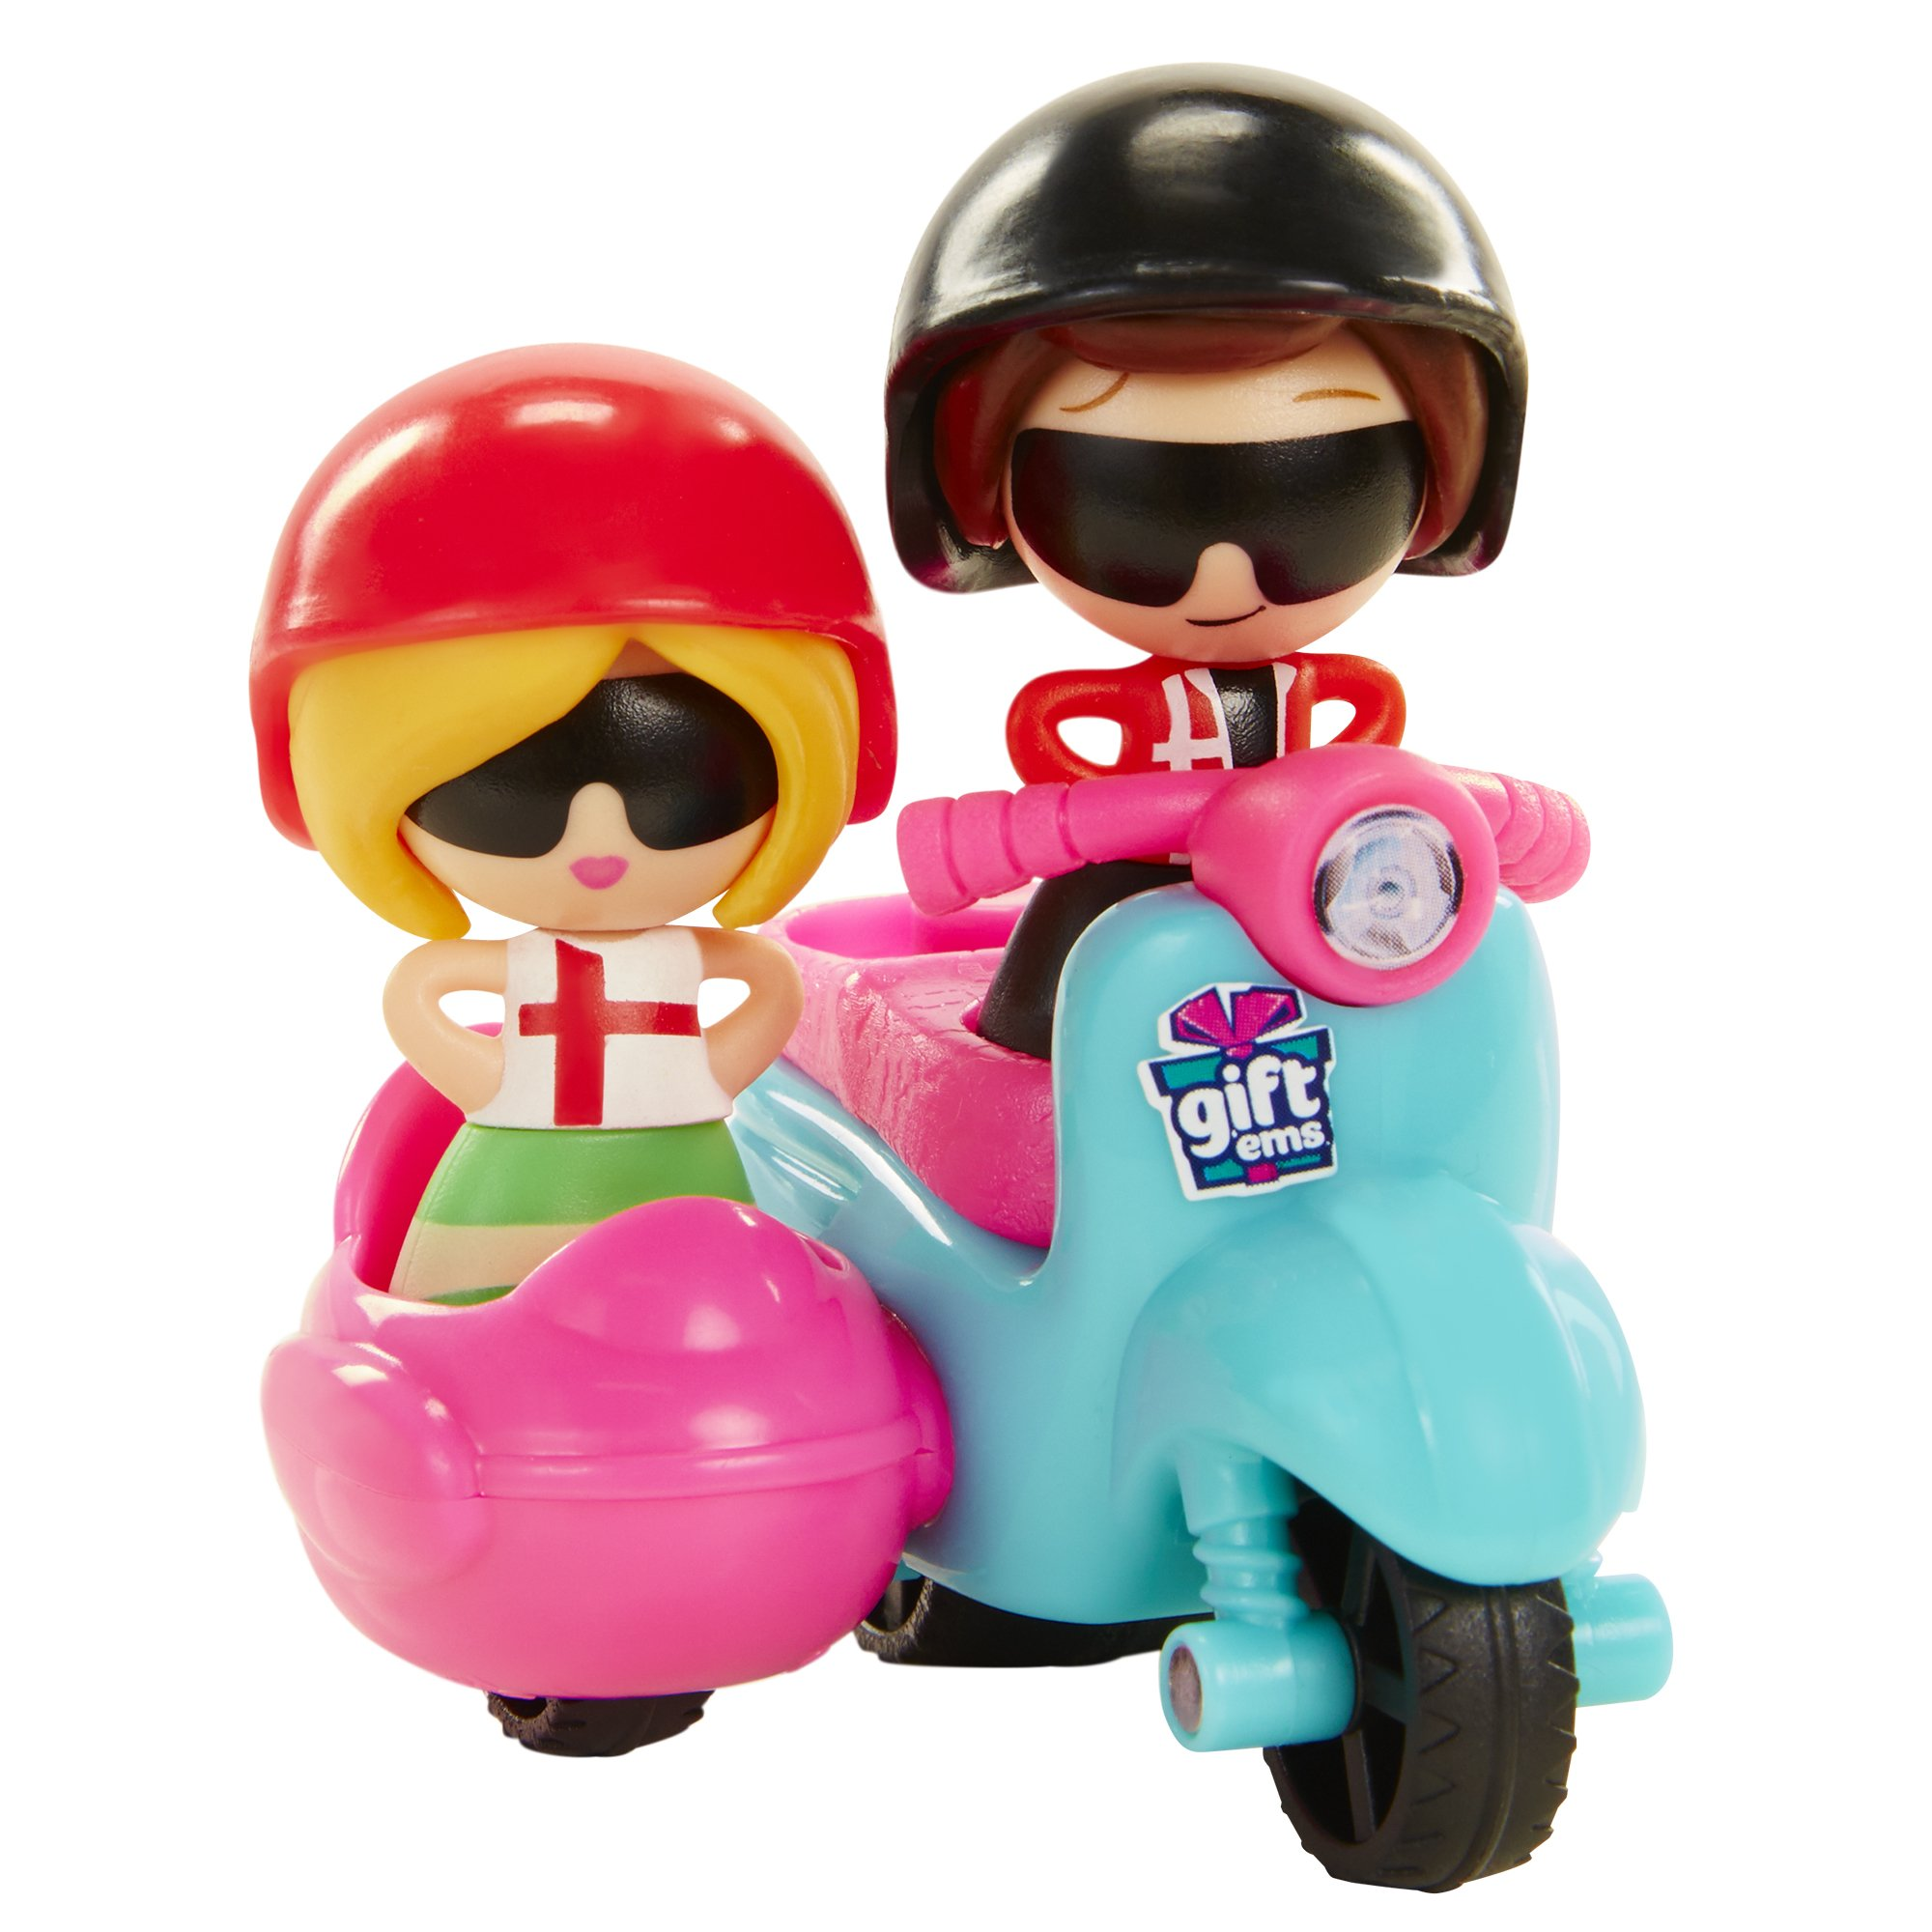 Baby Gift Sets South Africa : Dolls gift ems scooter play set with exclusive italy